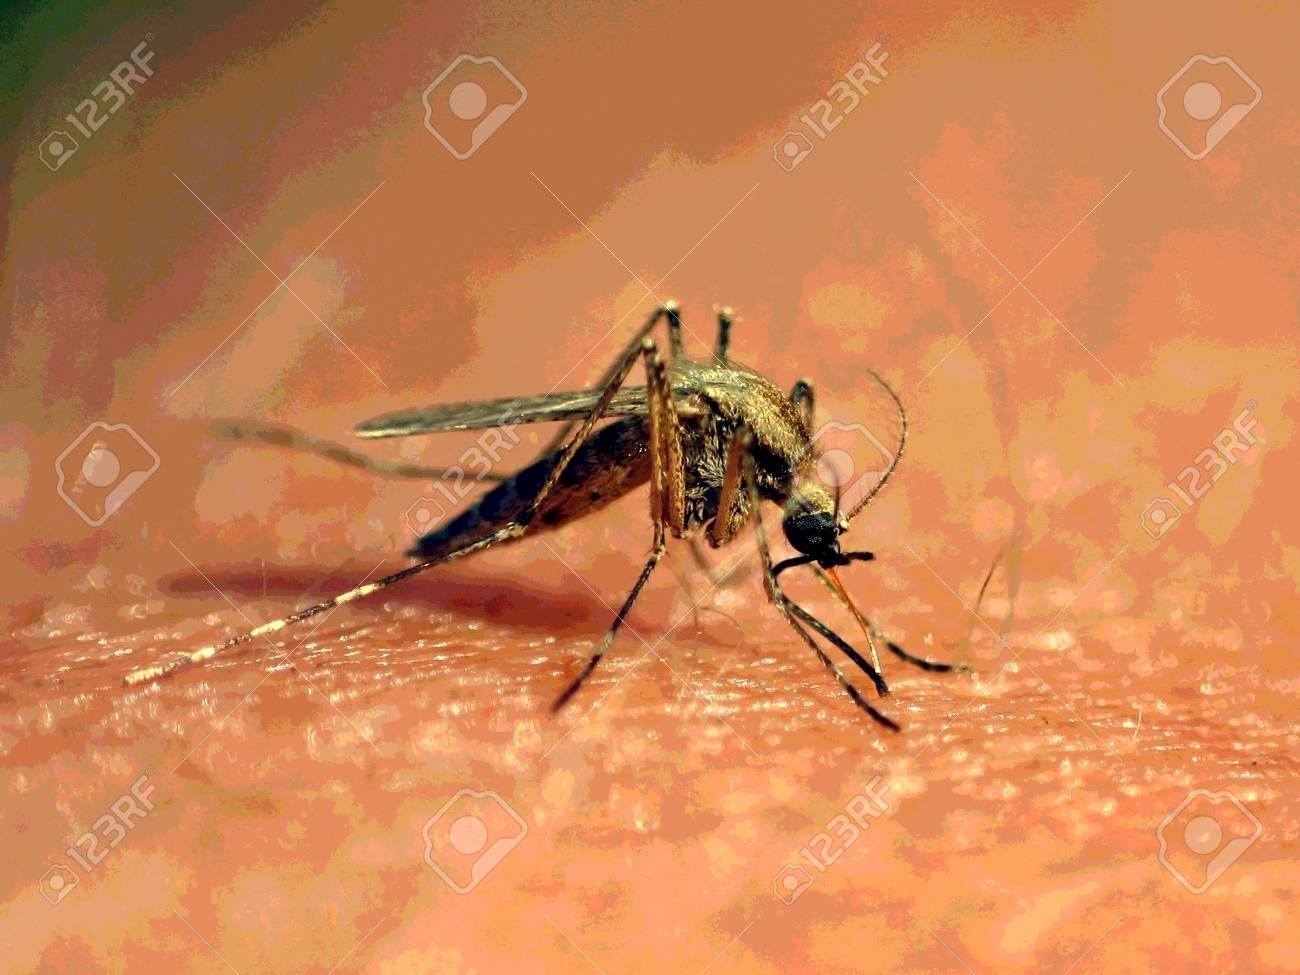 mosquito, wings, outdoors, blood, summer - 2057662